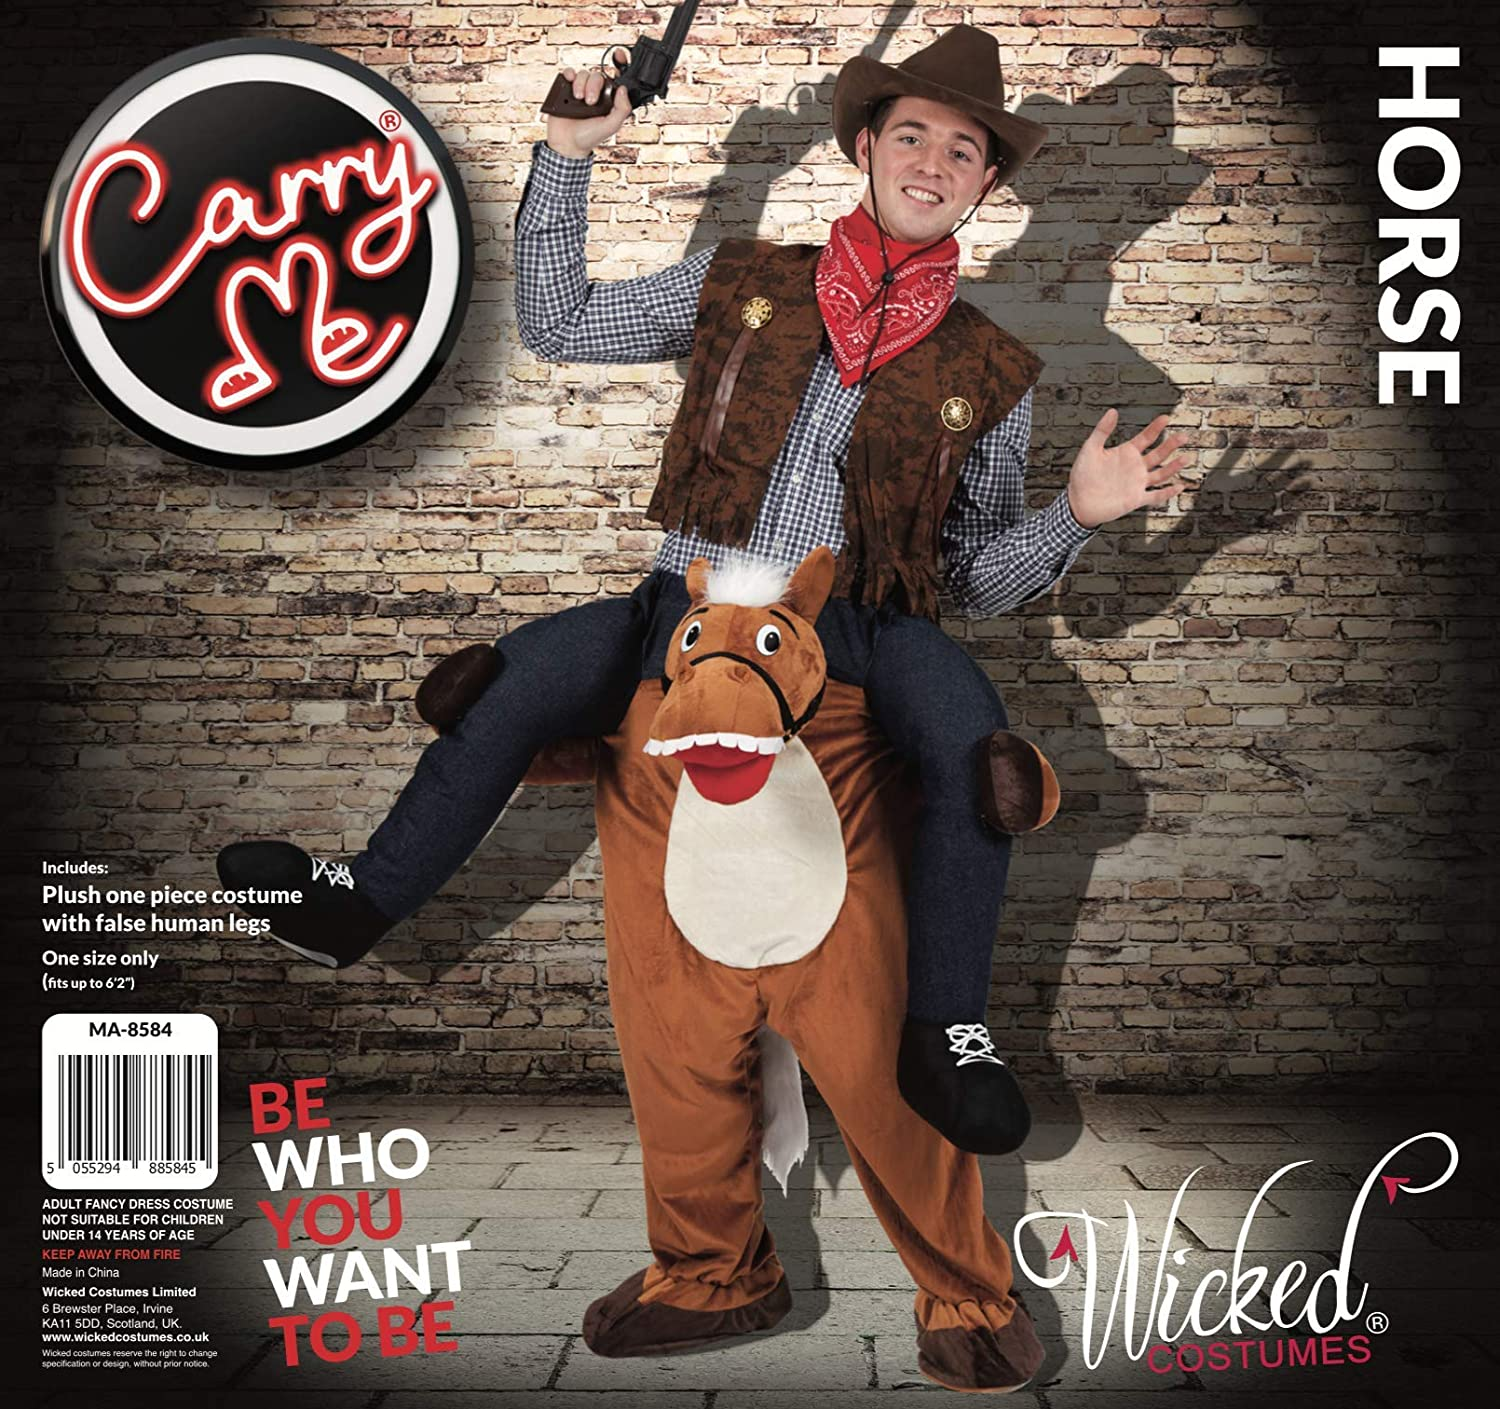 042a66f53 Carry Me® Horse Adult Costume One Size: Amazon.co.uk: Toys & Games